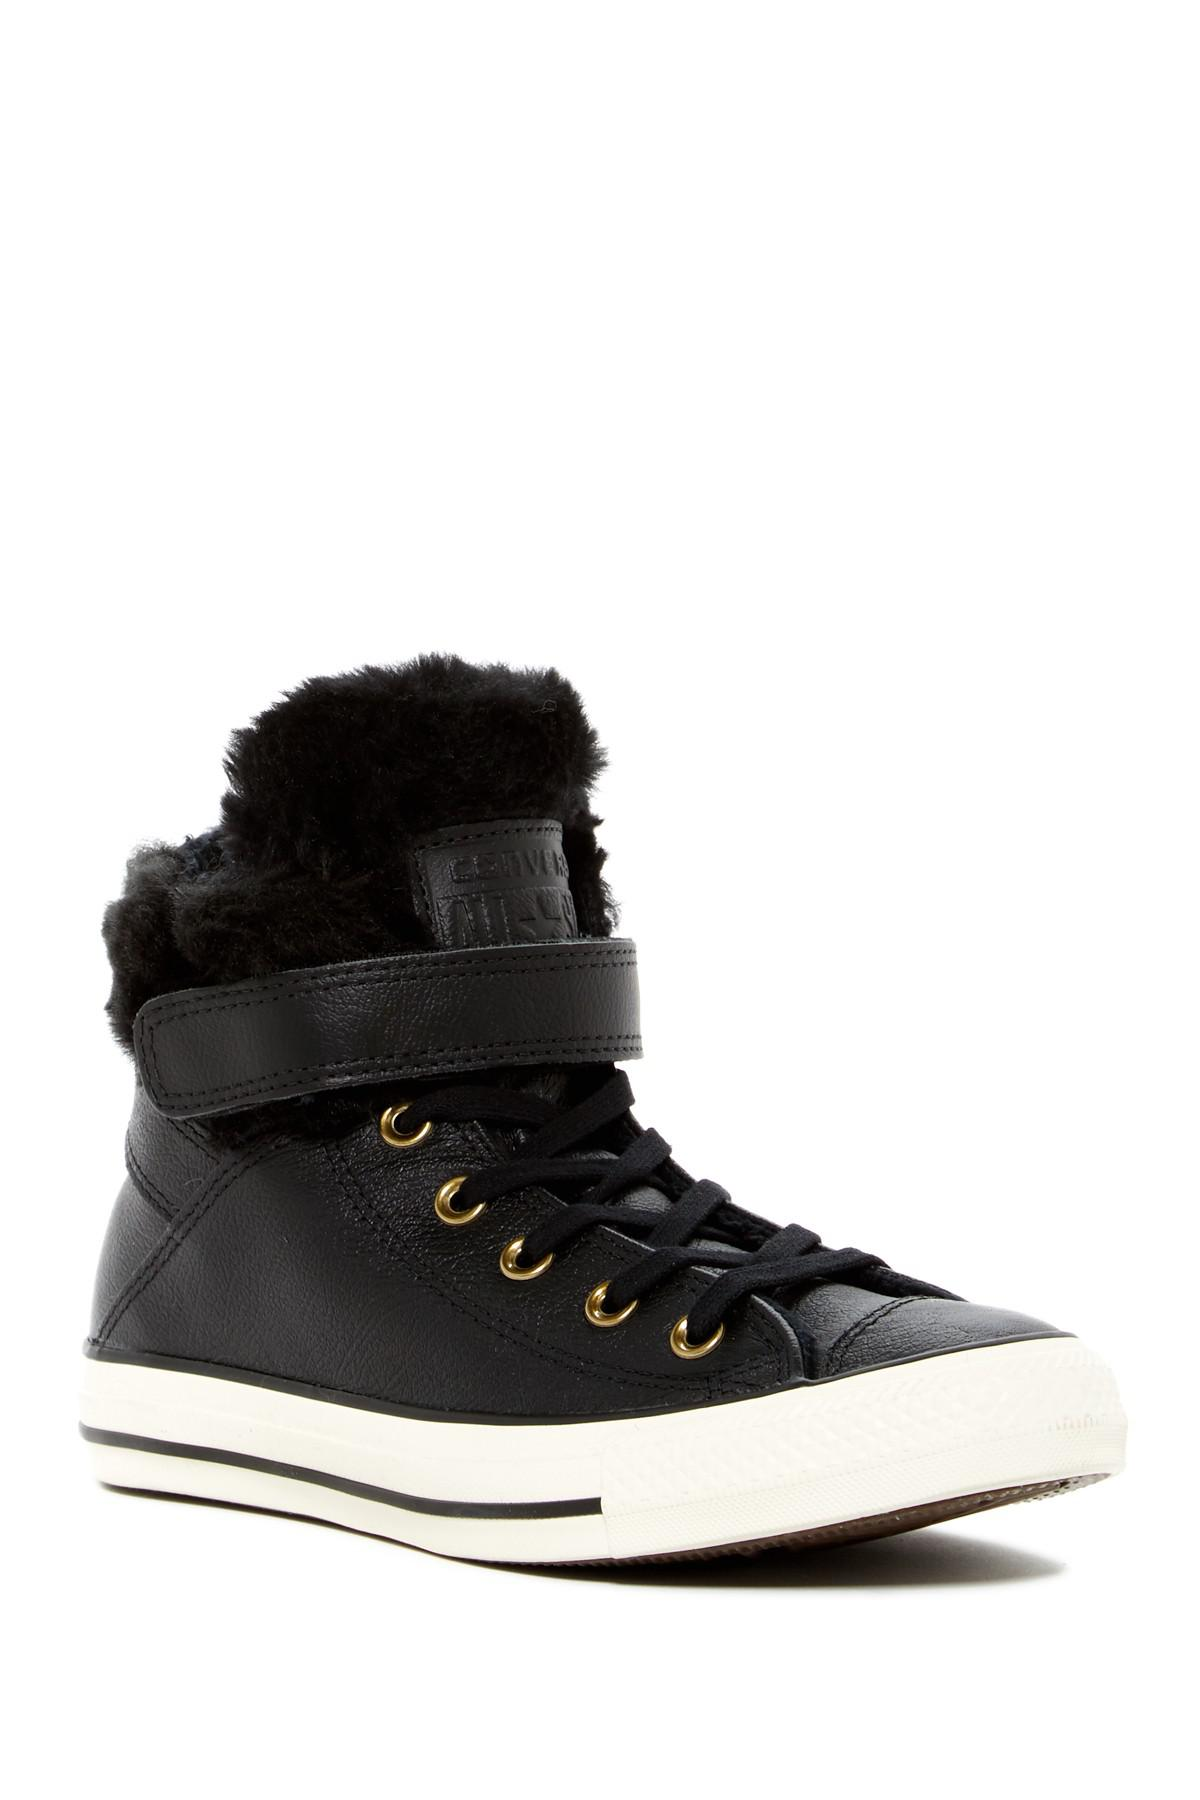 Converse Chuck Taylor All Star Faux Fur Lined Leather High